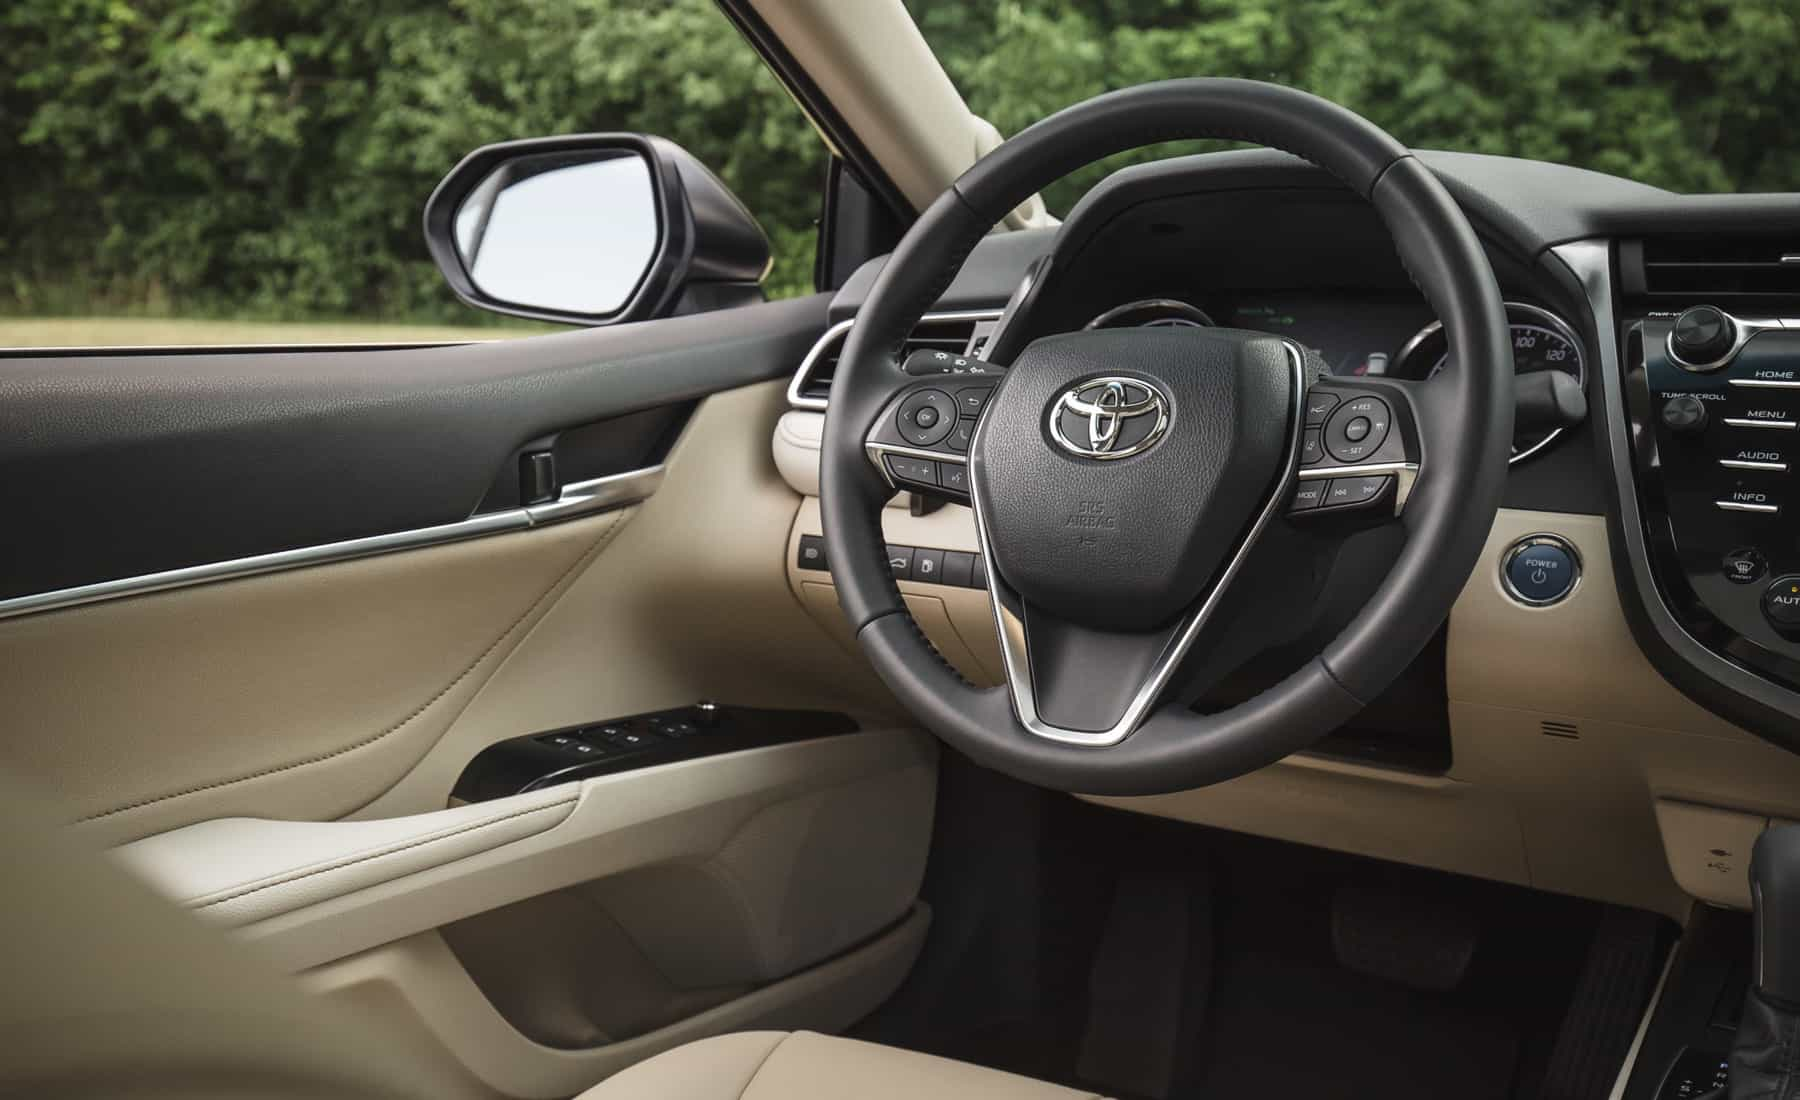 2018 Toyota Camry Hybrid XLE Interior Driver Cockpit (Photo 24 of 41)